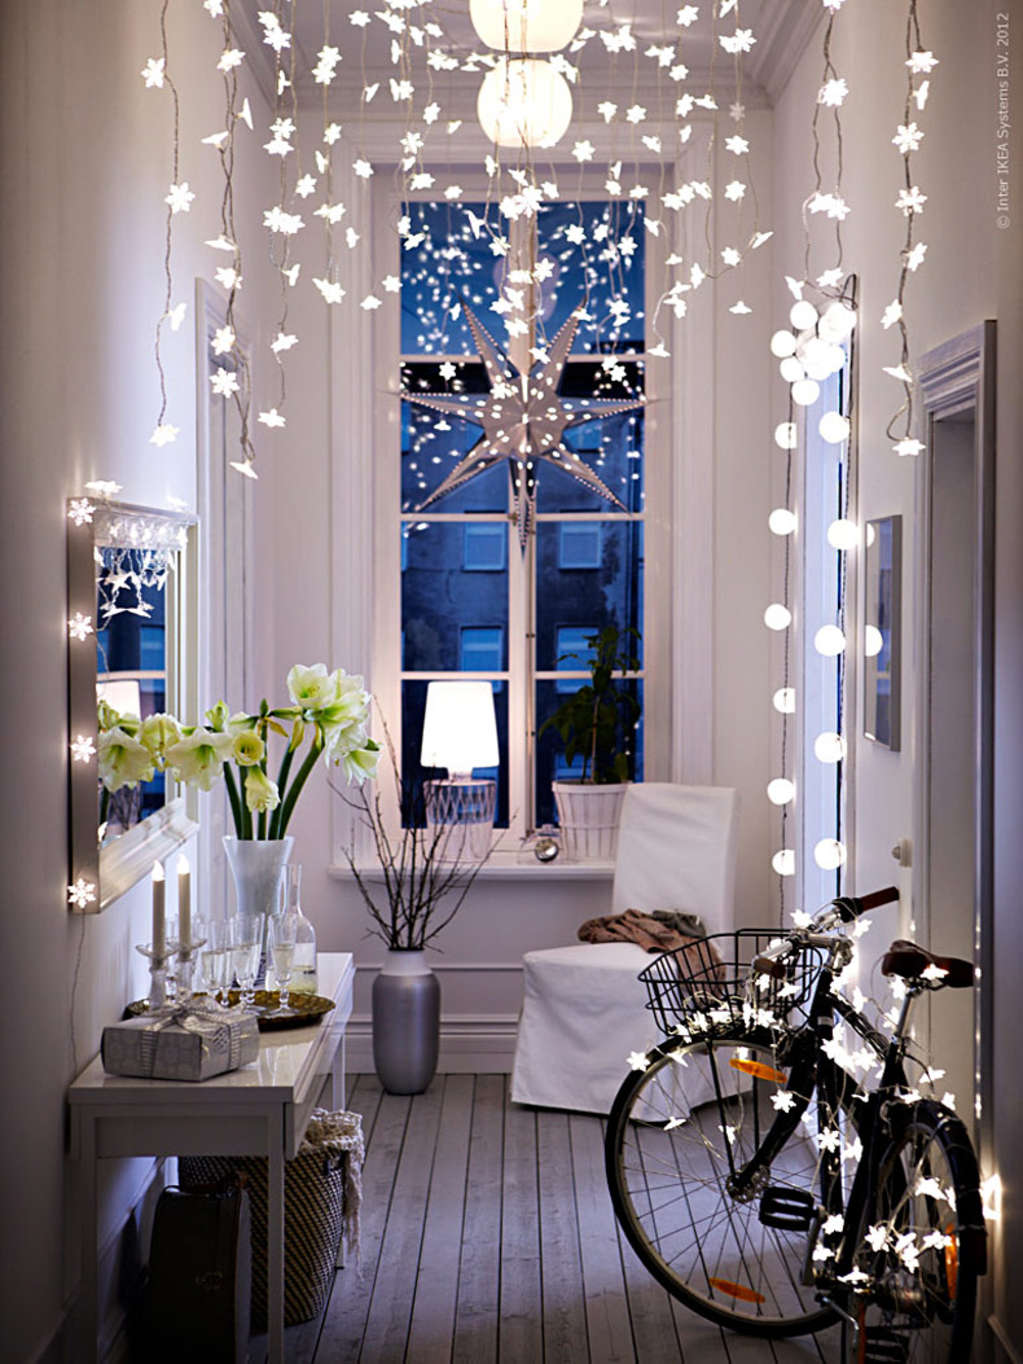 13 Ways to Use String Lights You (Maybe) Haven't Thought of